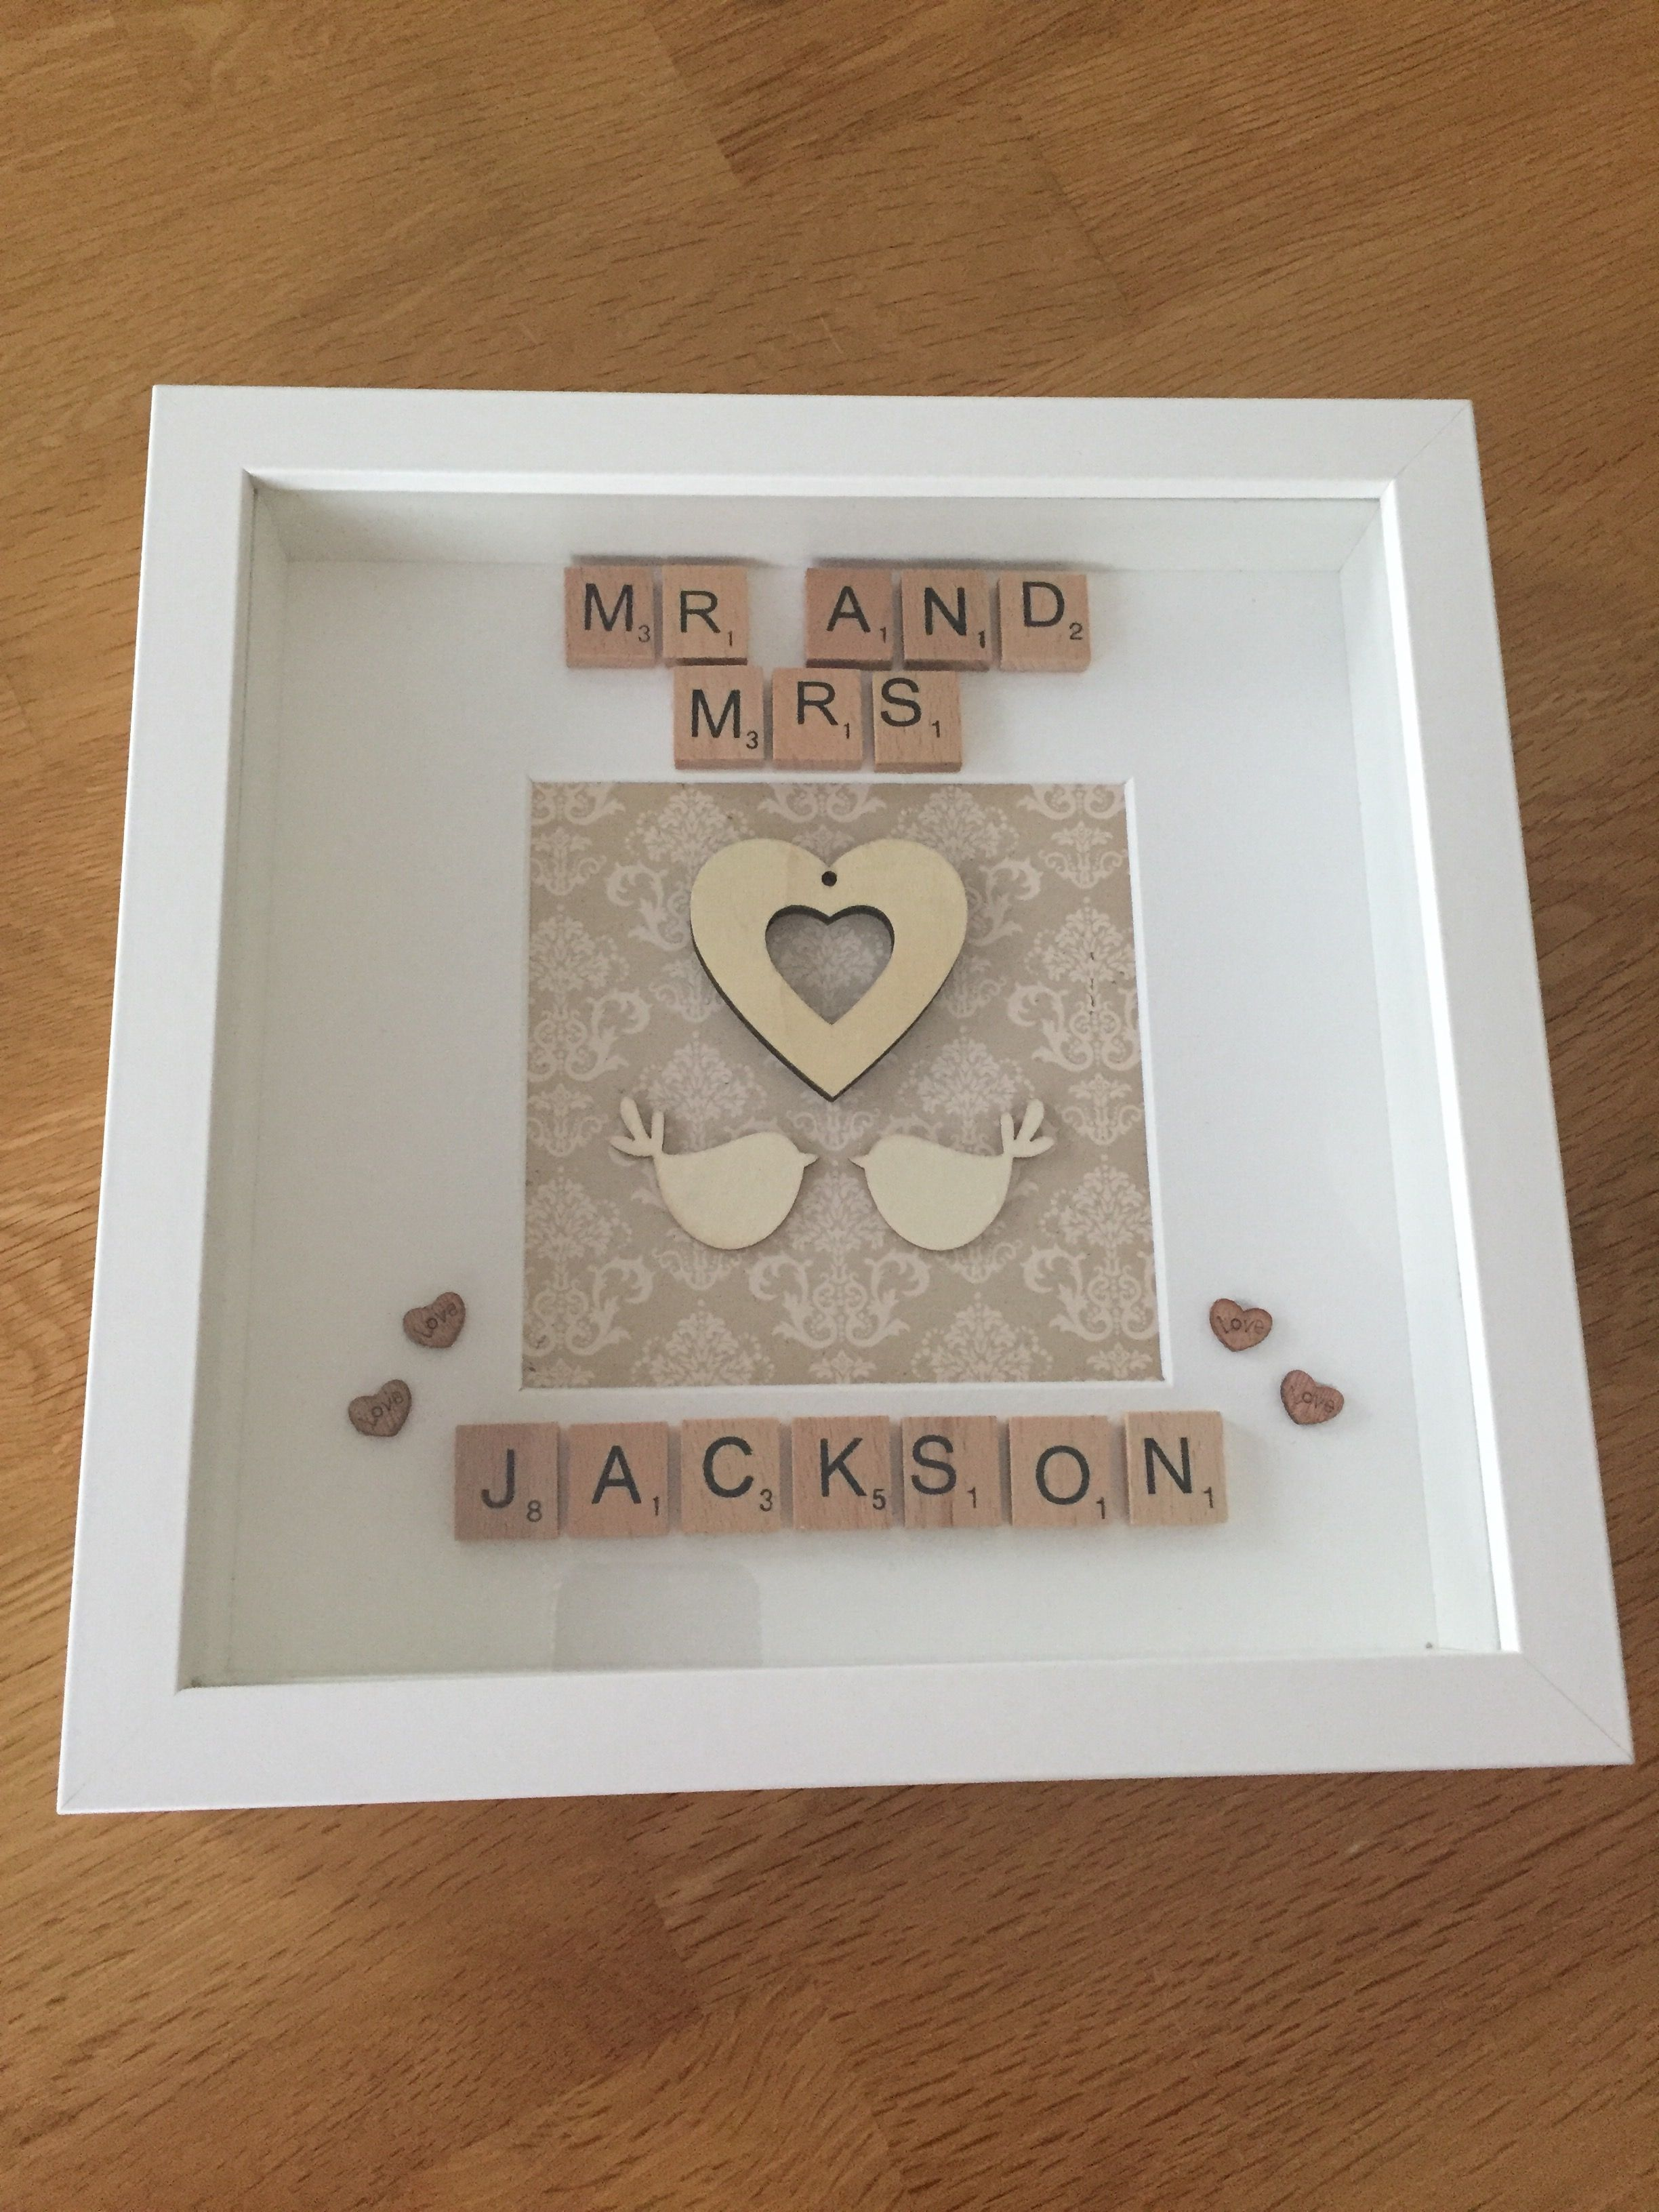 Mr and mrs jackson handmade personalised scrabble for Personalised mr and mrs letters